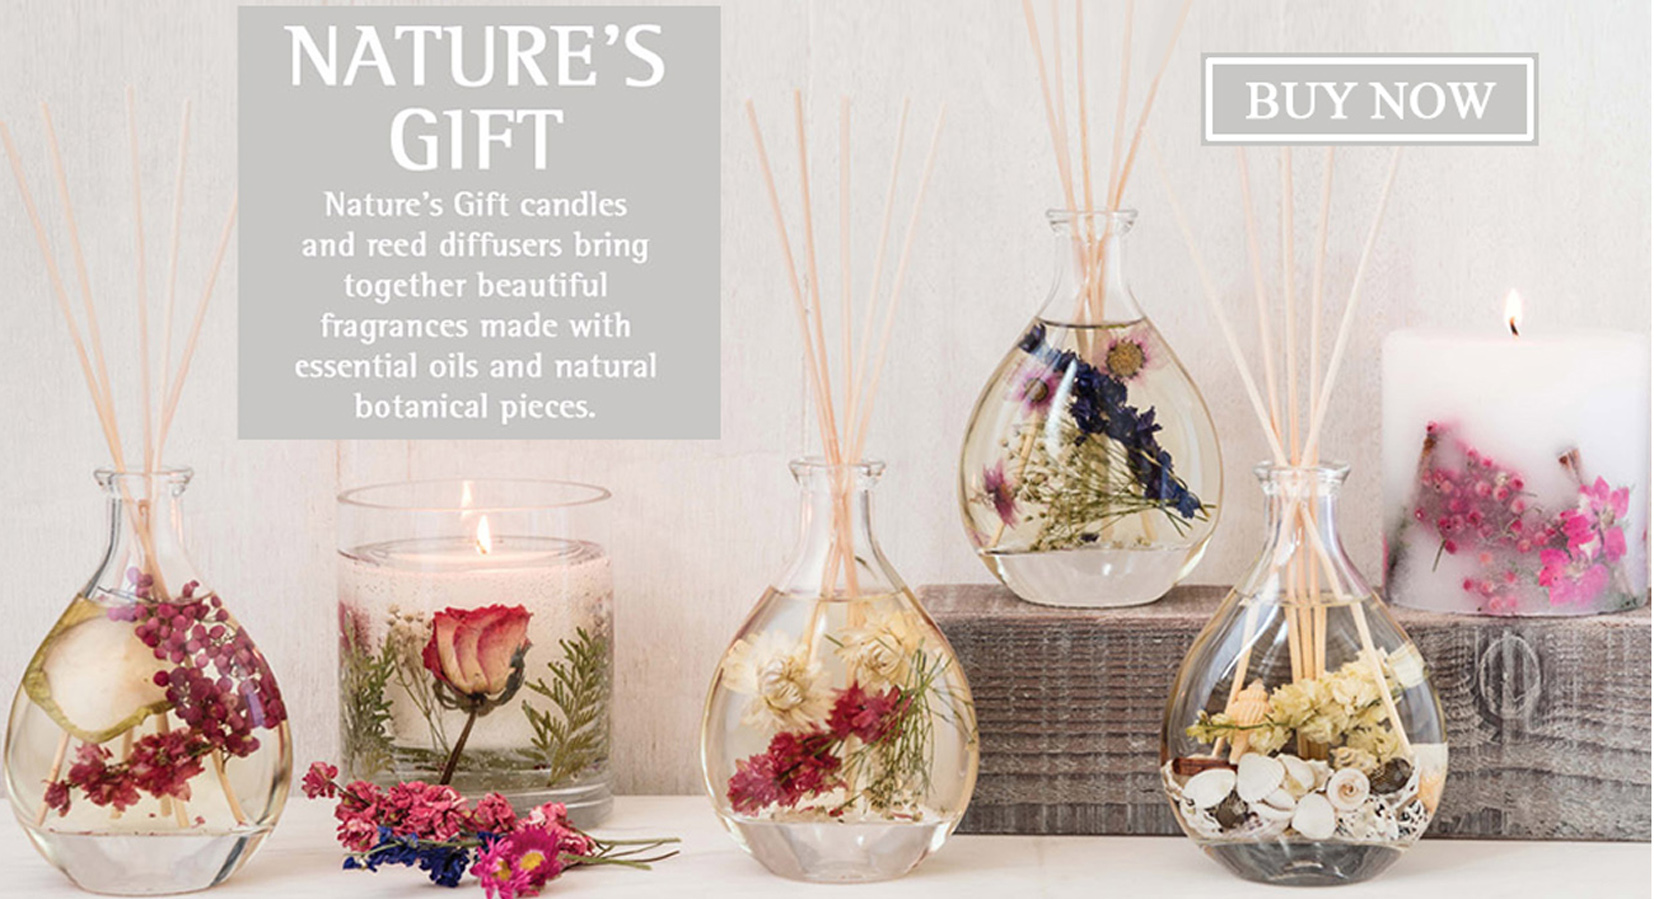 Nature's Gift scented candles & diffusers